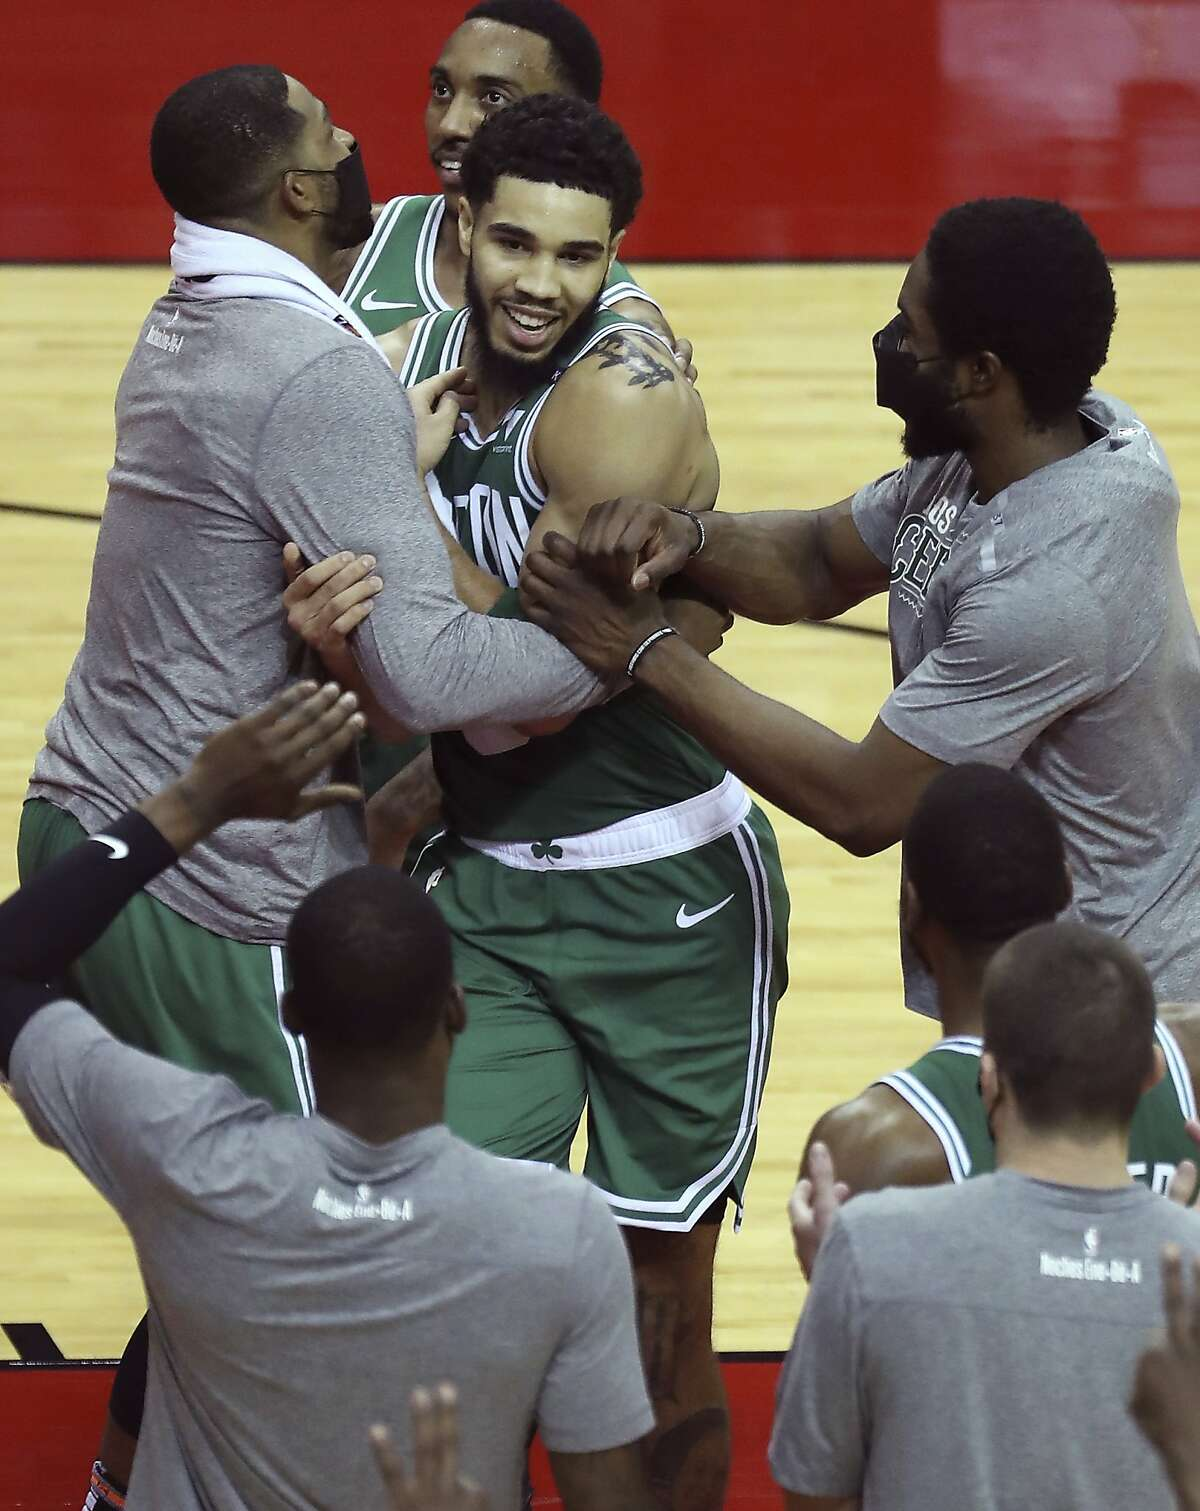 Boston Celtics forward Jayson Tatum (0) is hugged by teammates after he hit a three-point basket at the buzzer to end the third quarter against the Houston Rockets in an NBA basketball game Sunday, March 14, 2021, in Houston./Houston Chronicle via AP)